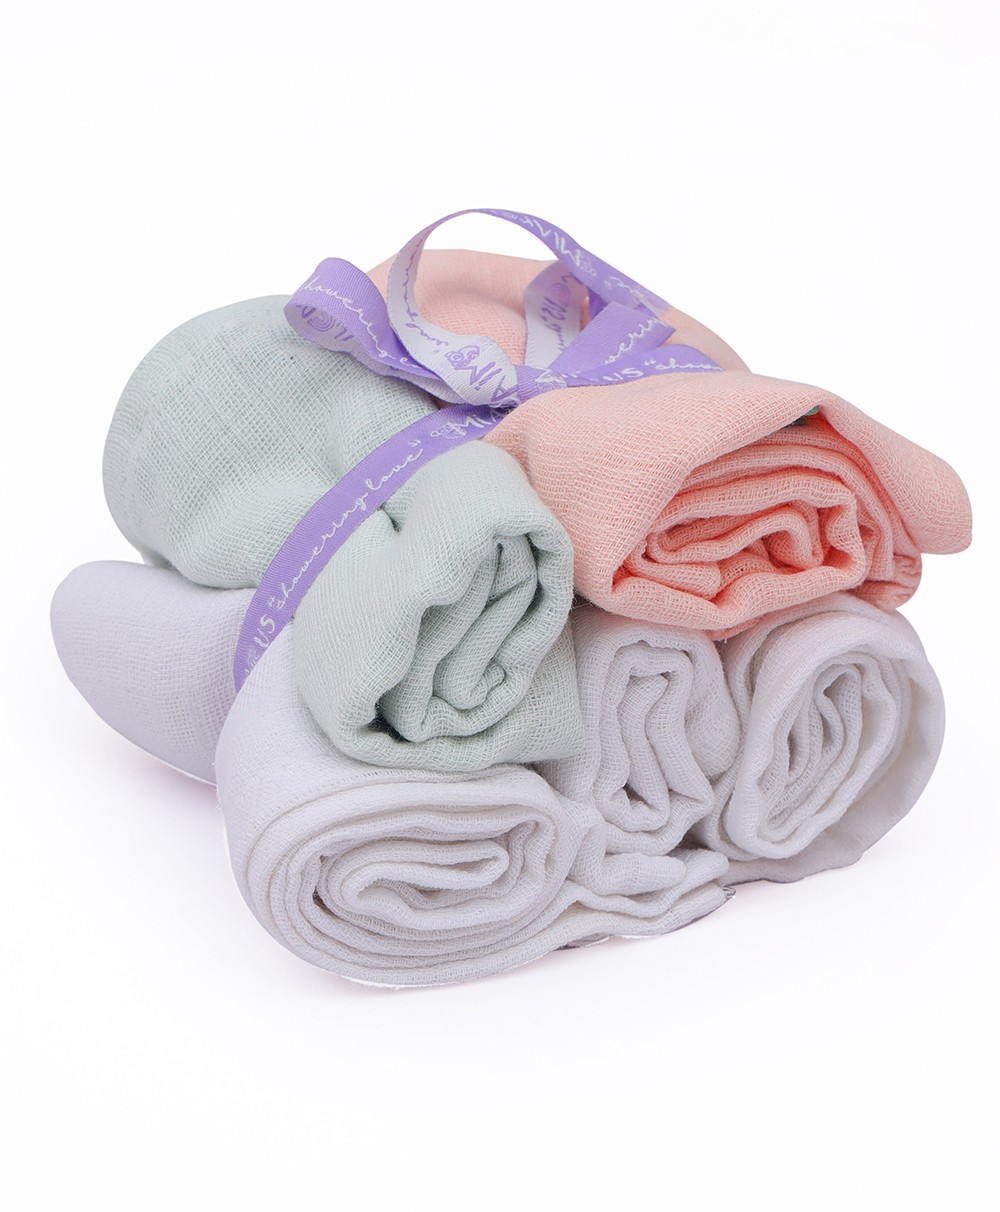 Care Muslin Squares - Arcus (Pack of 5)